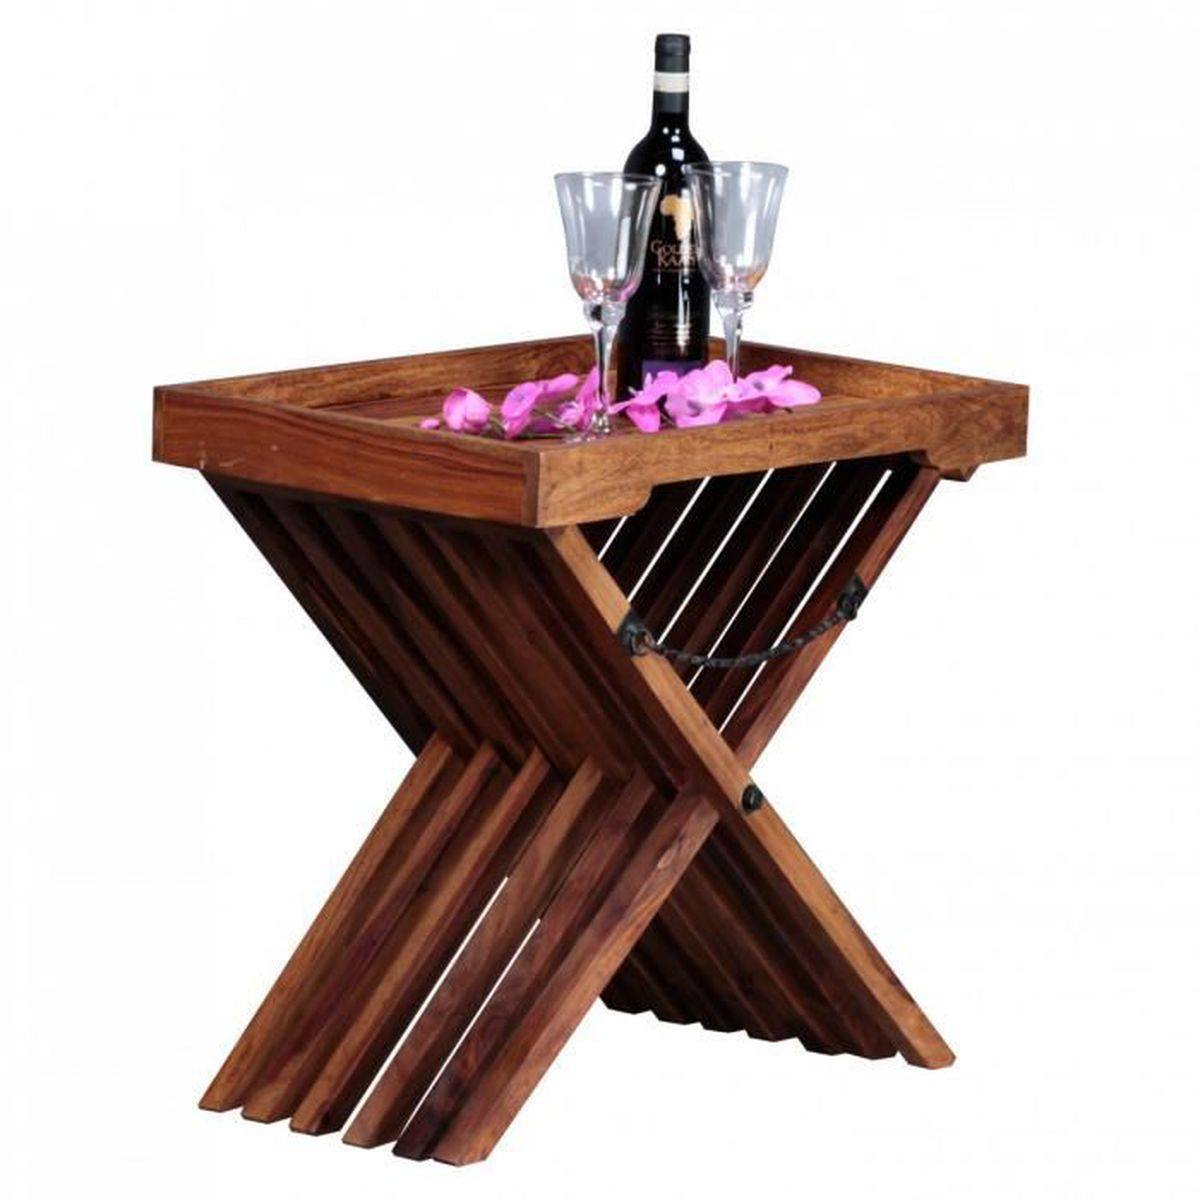 Table en bois massif design sheesham table pliante servant - Table basse en bois massif design ...